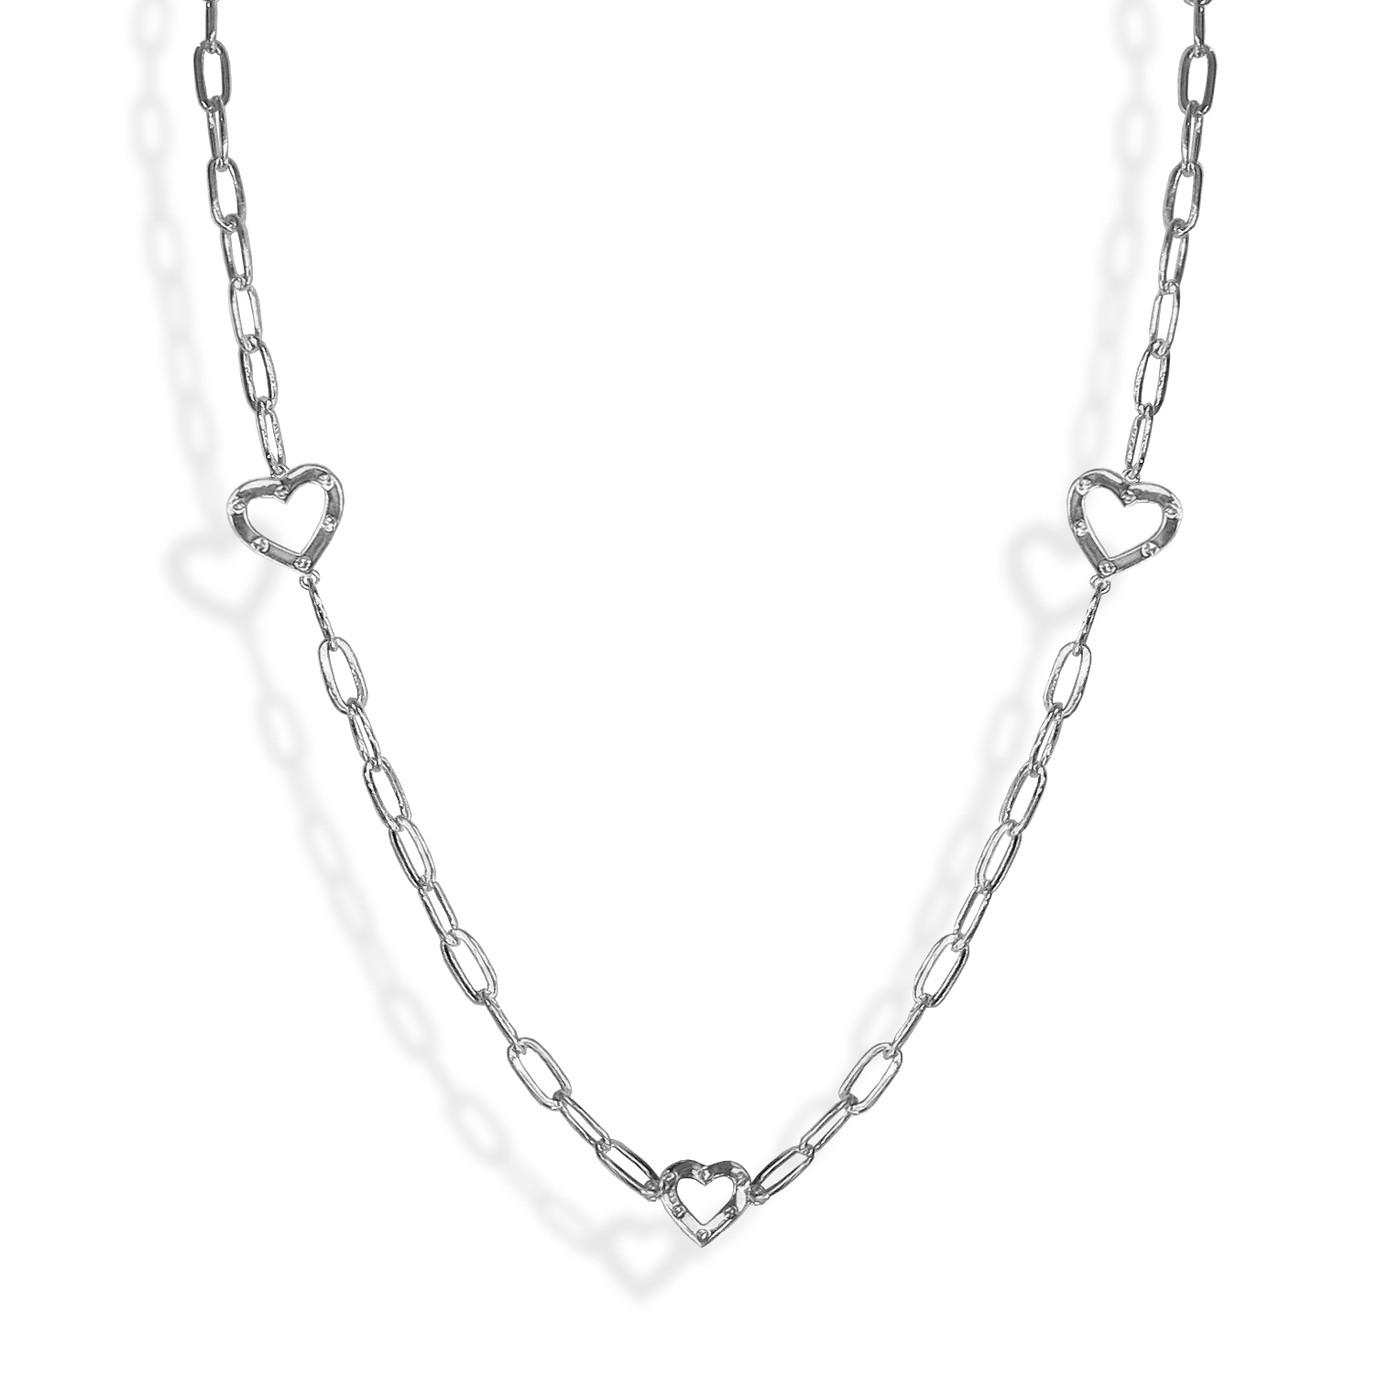 Grand Heart Necklace